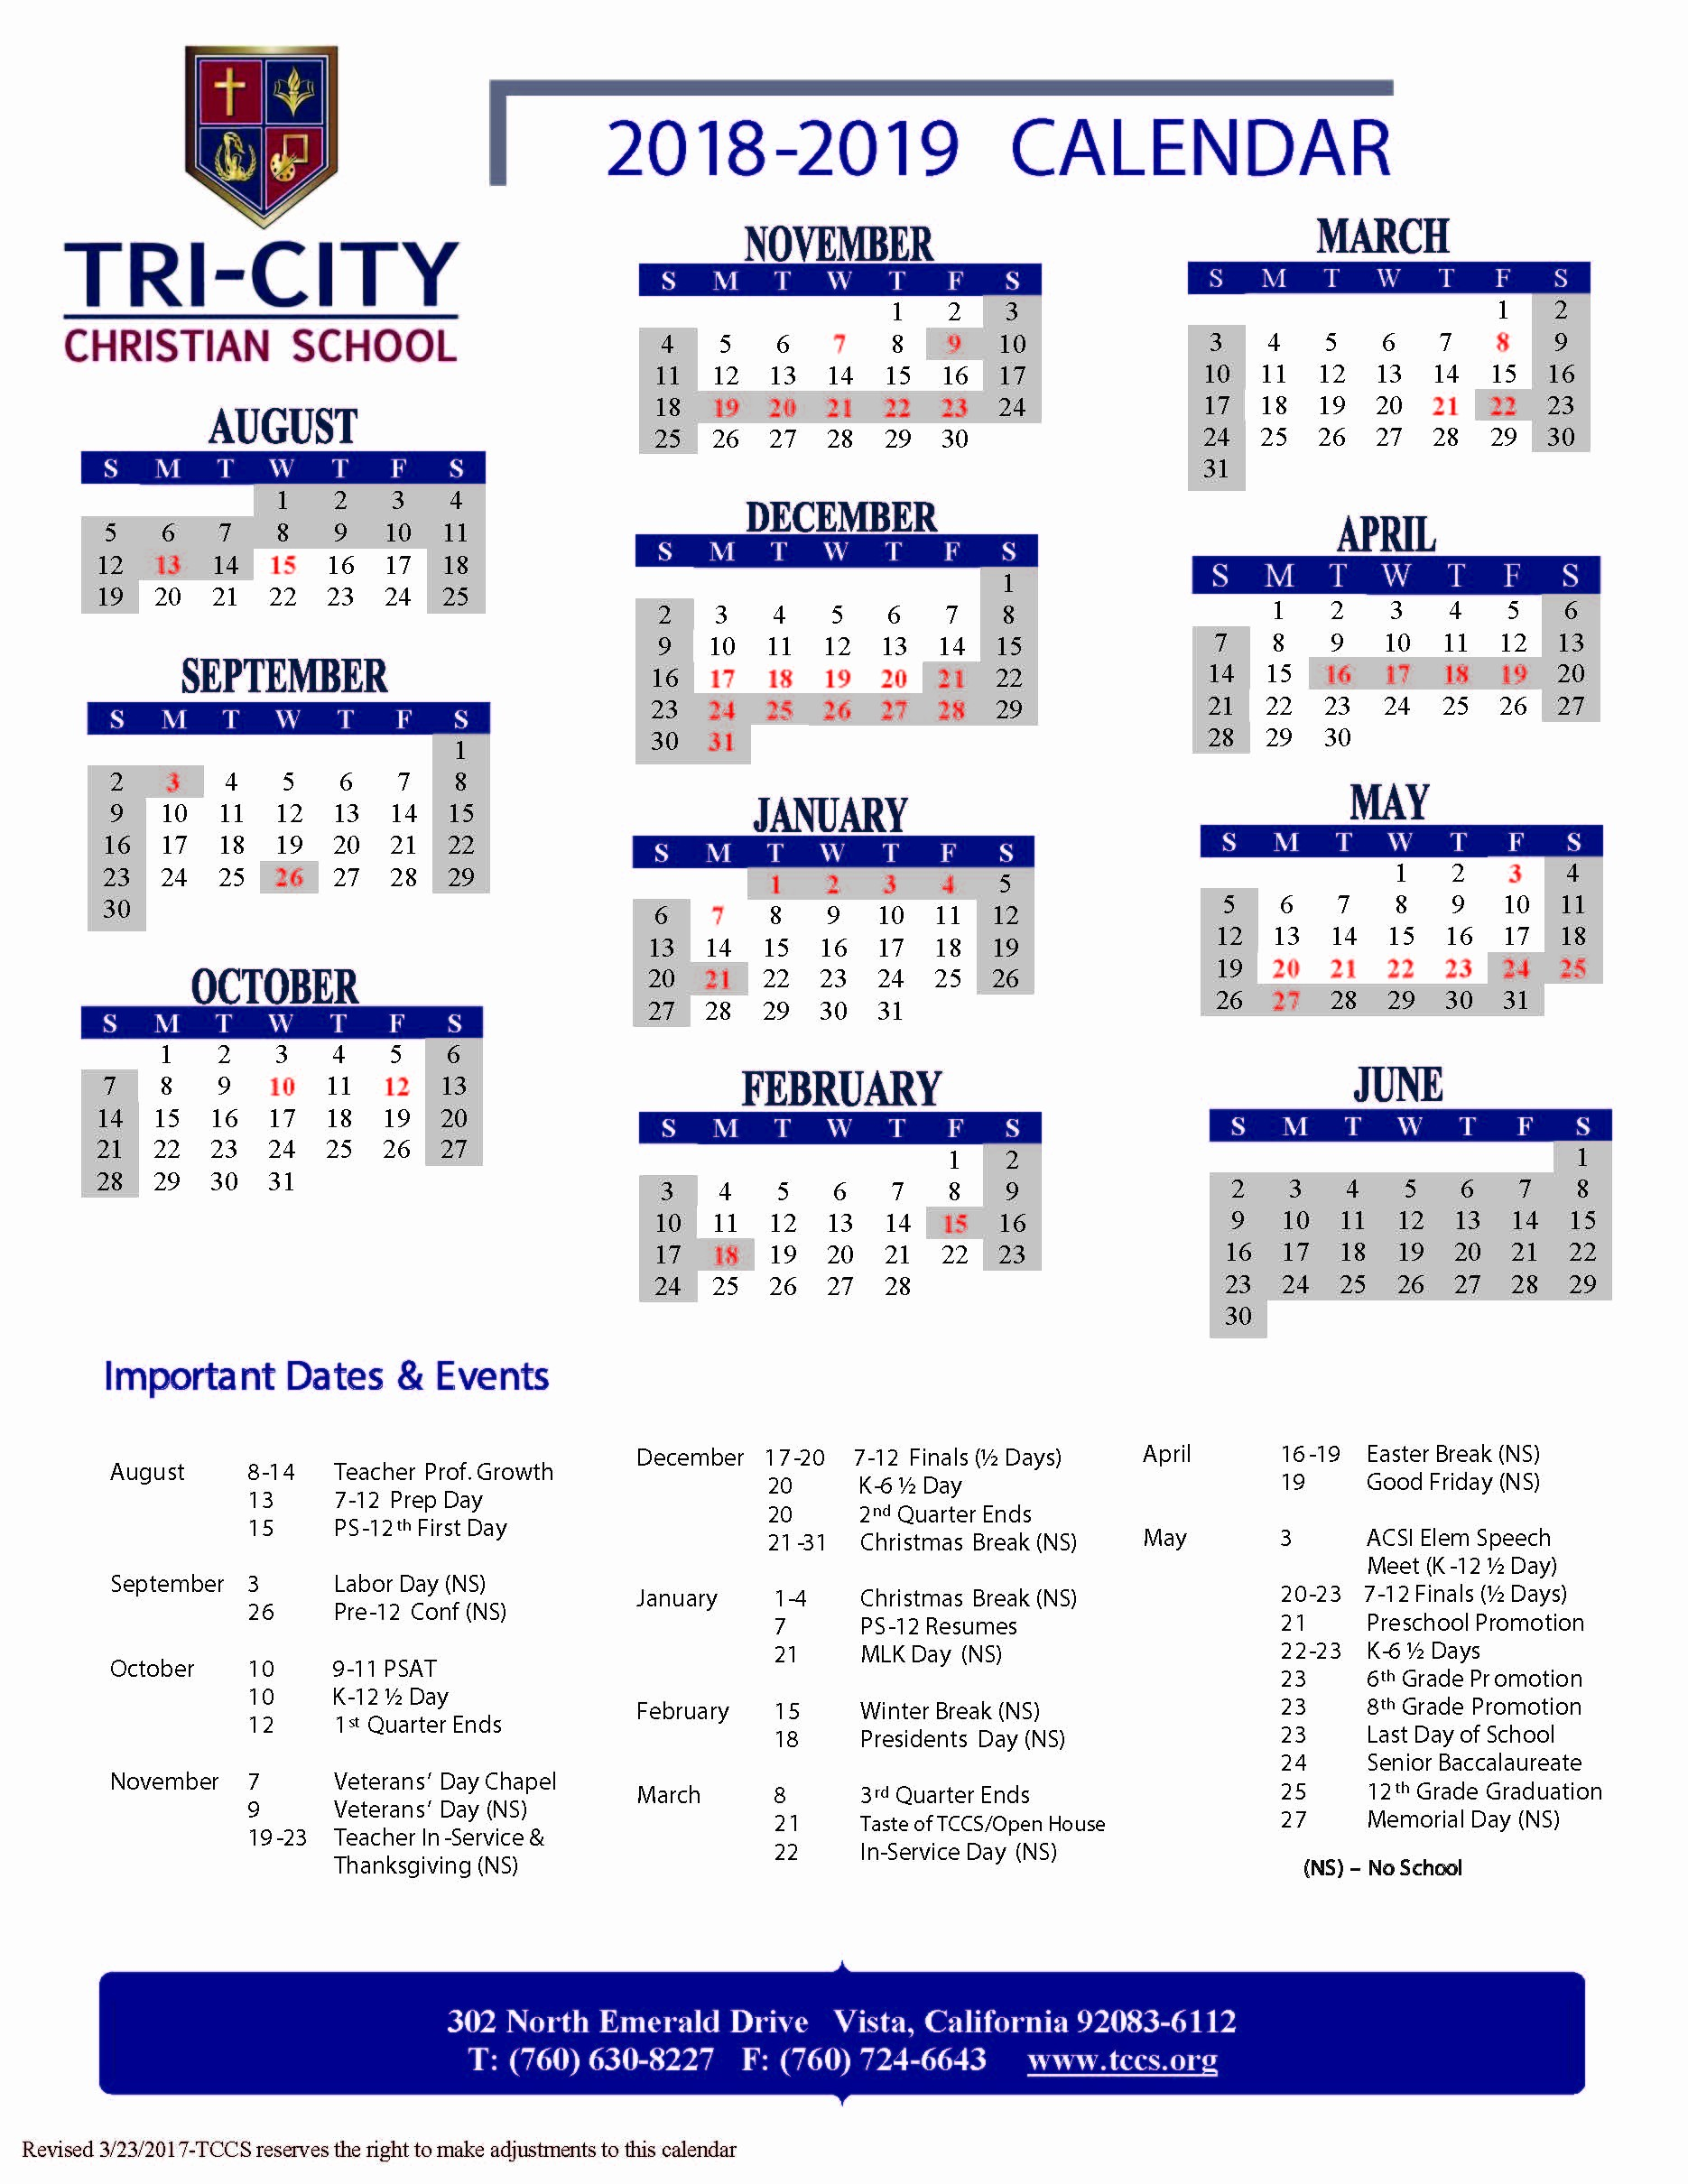 At A Glance 2018 Calendar Awesome Tri City Christian School 2018 2019 Year at A Glance